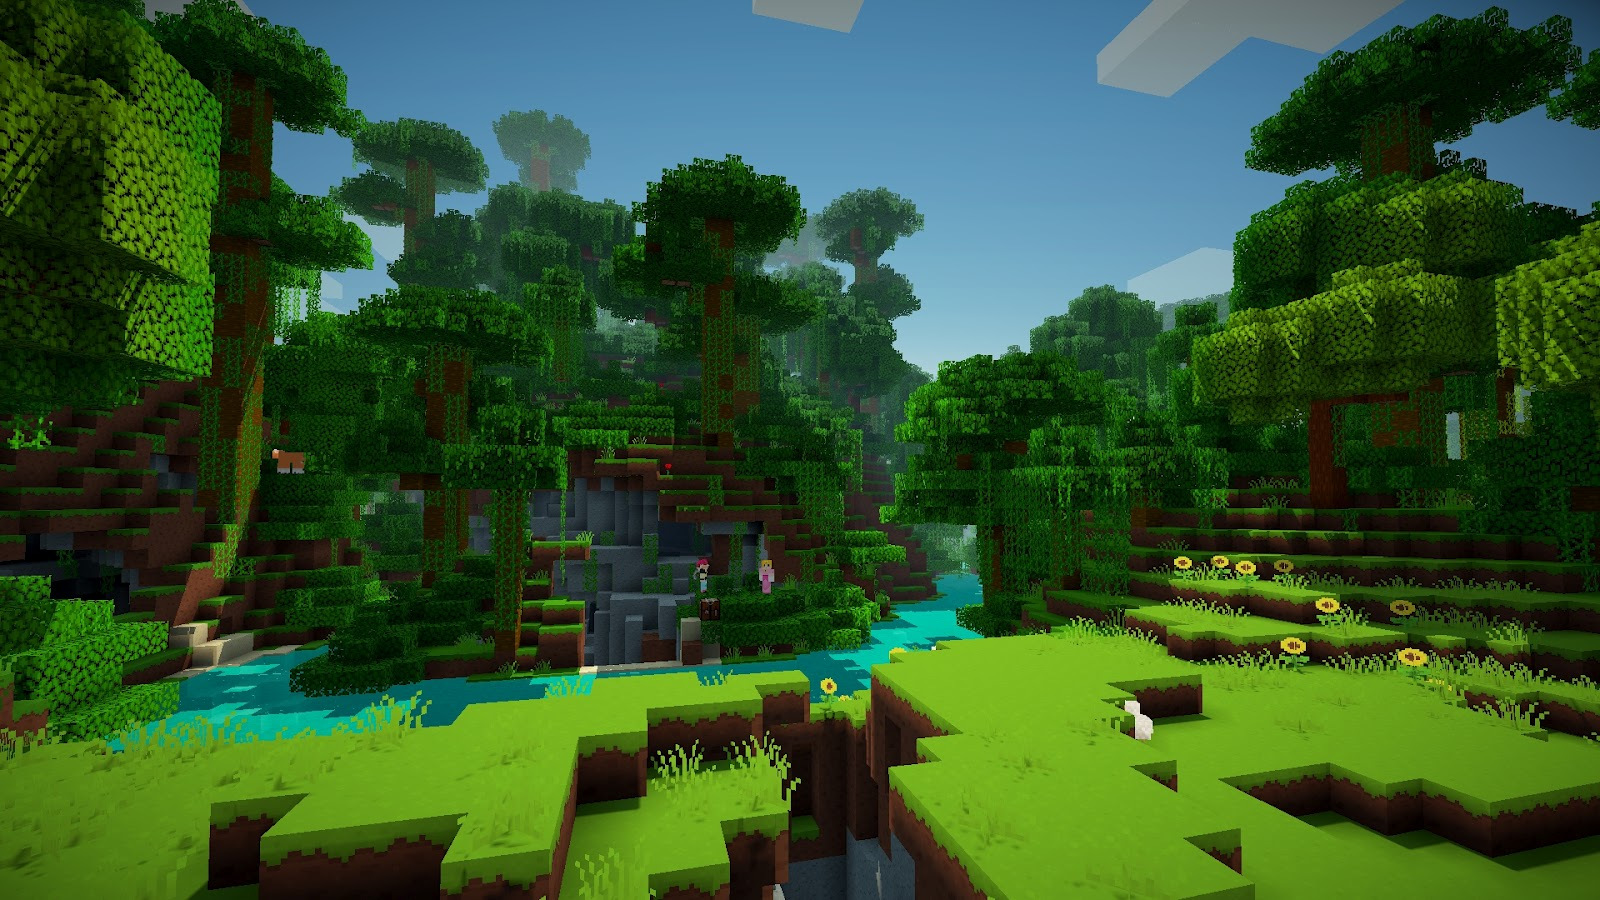 Fantastic Wallpaper Minecraft Scenery - forest+map  Picture_293182.jpg